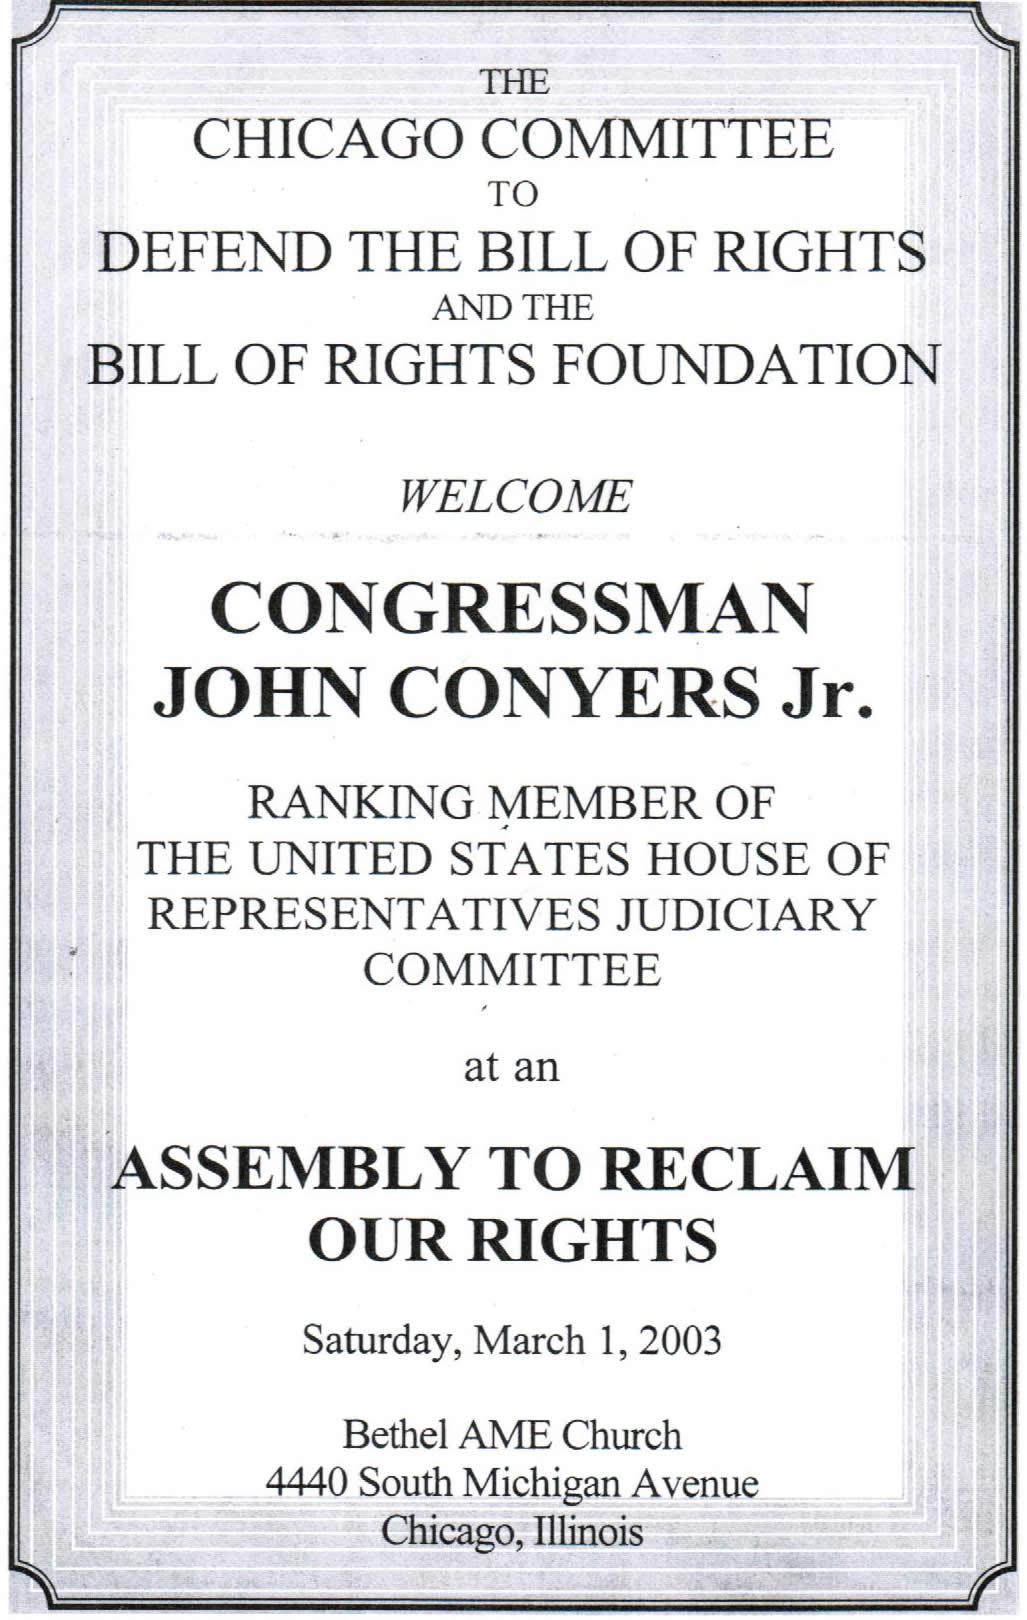 Invitation to CCDBR event with John Conyers